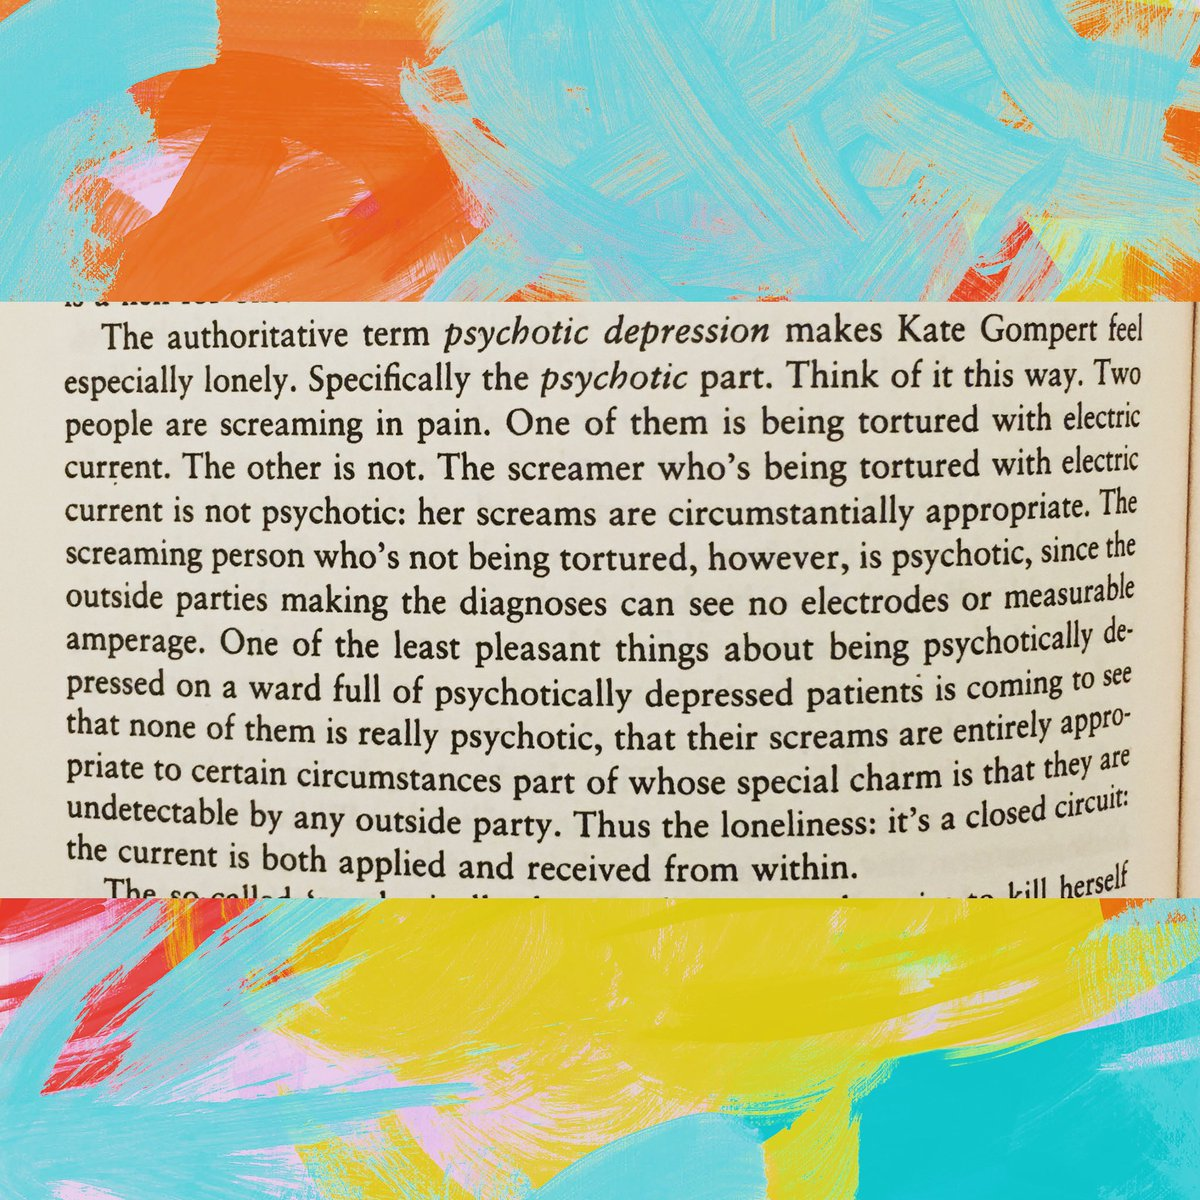 """From """"Infinite Jest"""" by David Foster Wallace #infinitejest #davidfosterwallace #quotes #depression #books #readingdavid"""